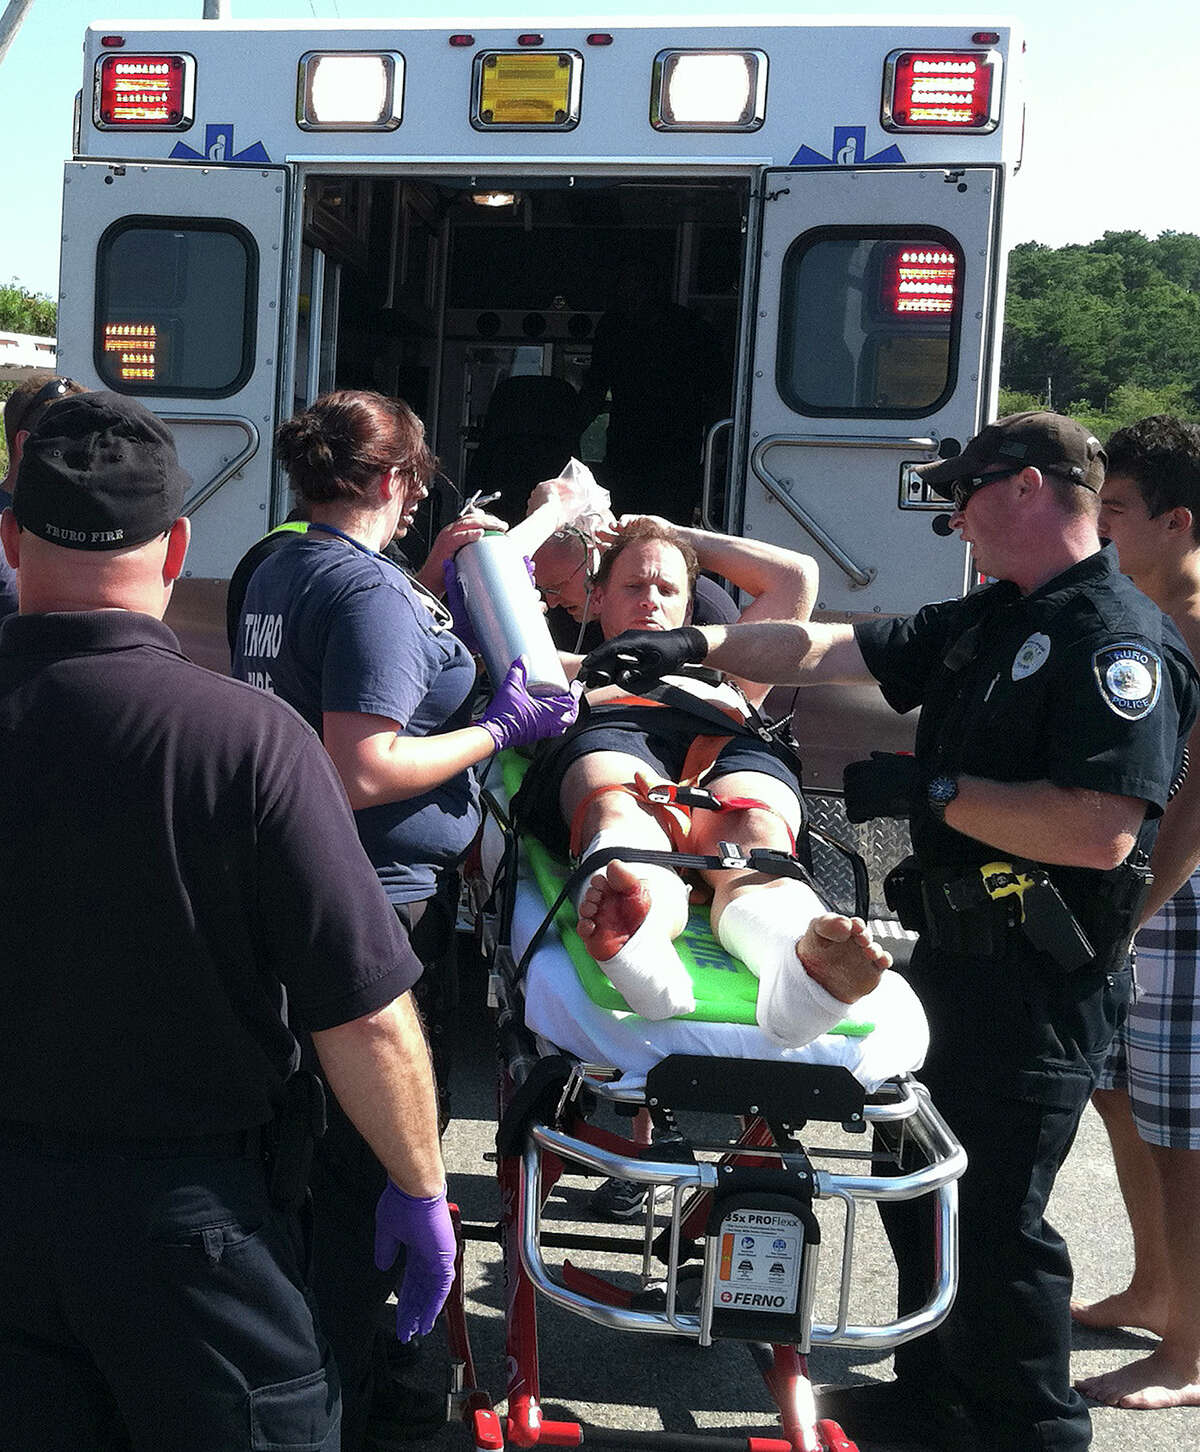 In this Monday, July 30, 2012 photo, Christopher Myers is loaded on an ambulance at Ballston Beach in Truro, Mass., after sustaining bite wounds to his legs while swimming. The beach, on Cape Cod, remained open Tuesday as authorities tried to determine whether it was a shark that attacked him. (AP Photo/Cape Cod Times, Eric Williams) INTERNET OUT. MAGS OUT. TV OUT. NO ARCHIVING WITHOUT PERMISSION. NO SALES. MANDATORY CREDIT: ERIC WILLIAMS/CAPE COD TIMES.